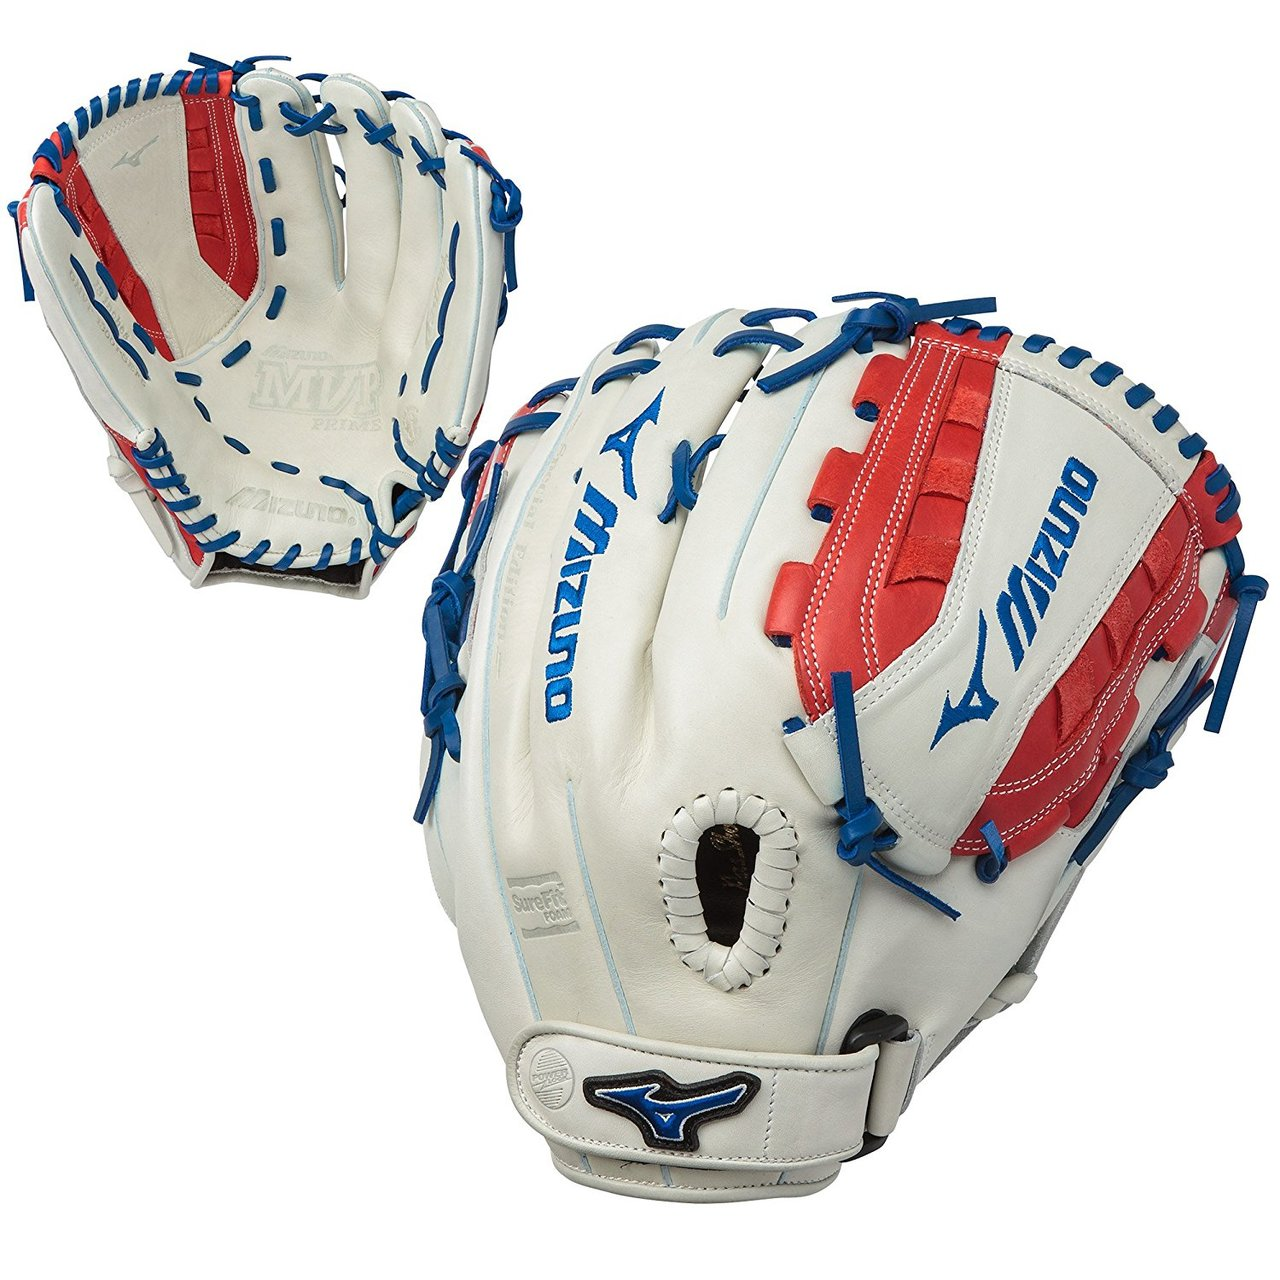 mizuno-mvp-prime-se-13-inch-gmvp1300psef5-fastpitch-softball-glove-silver-red-navy-right-hand-throw GMVP1300PSEF5-SIRDNV-RightHandThrow Mizuno 889961059858 The MVP Prime SE fastpitch softball series gloves feature a Center